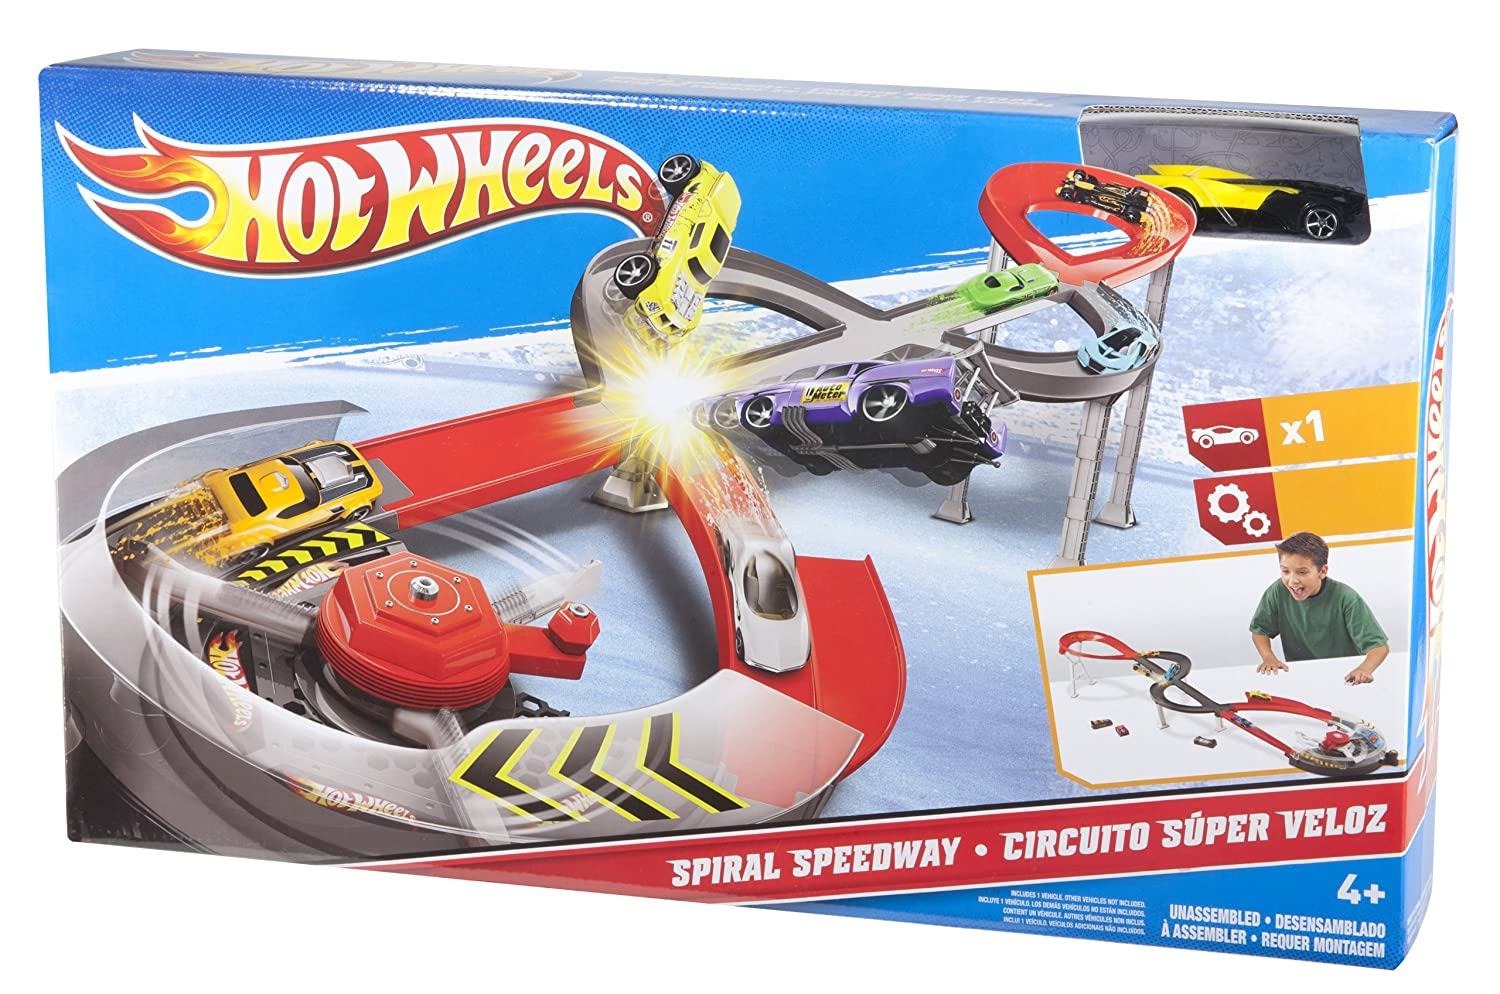 Circuito Hot Wheels : Buy hotwheel hot wheels spiral speedway online at low prices in